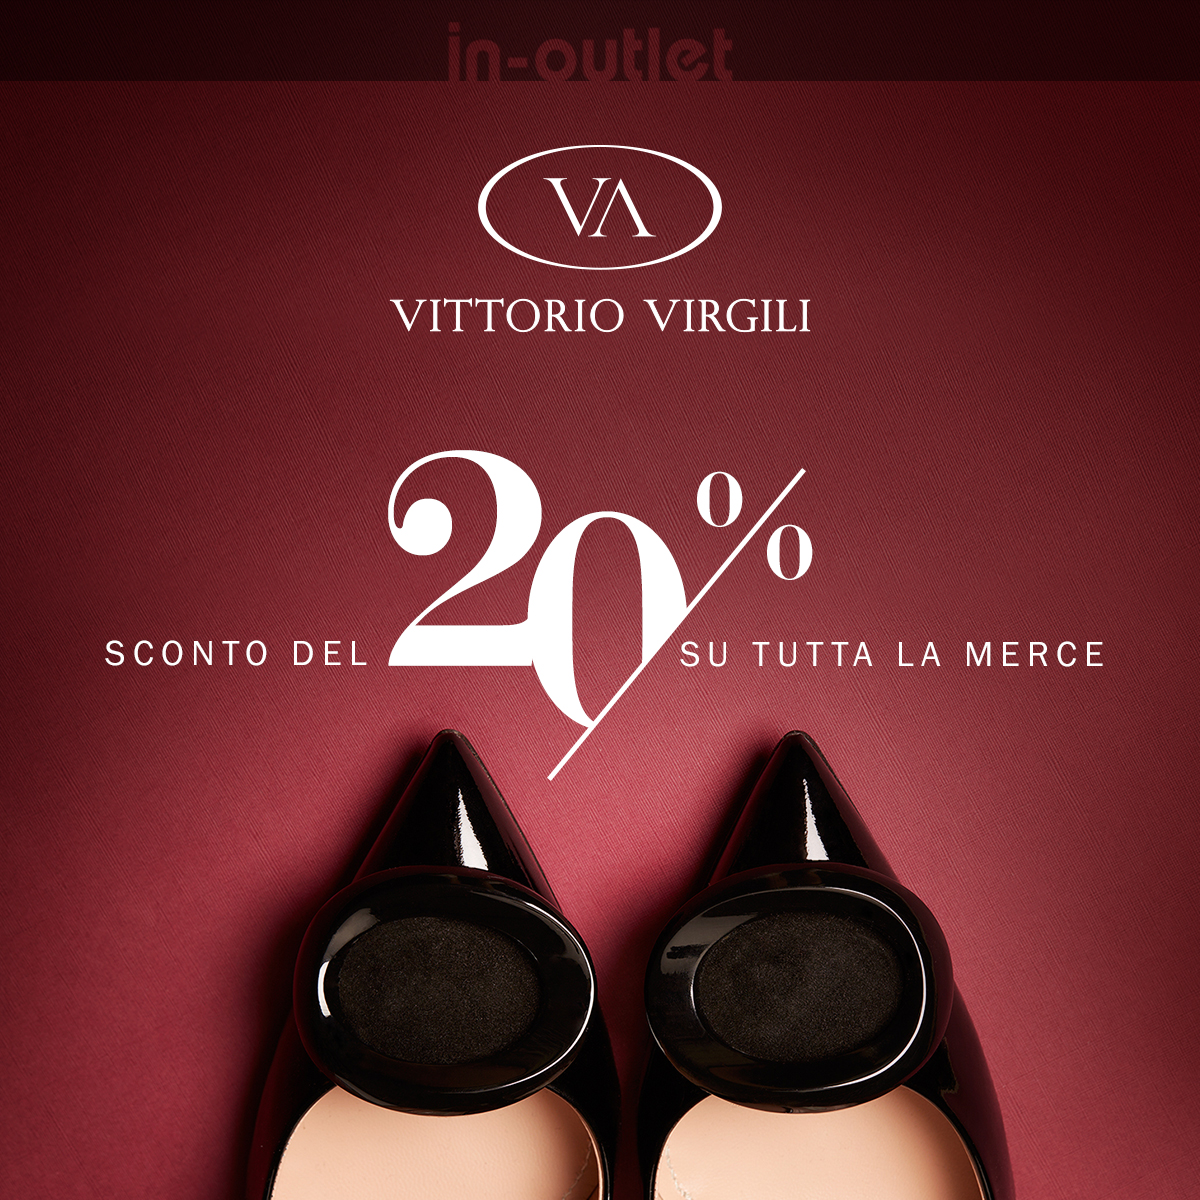 Special promo up to 20% at Vittorio Virgili Factory Store